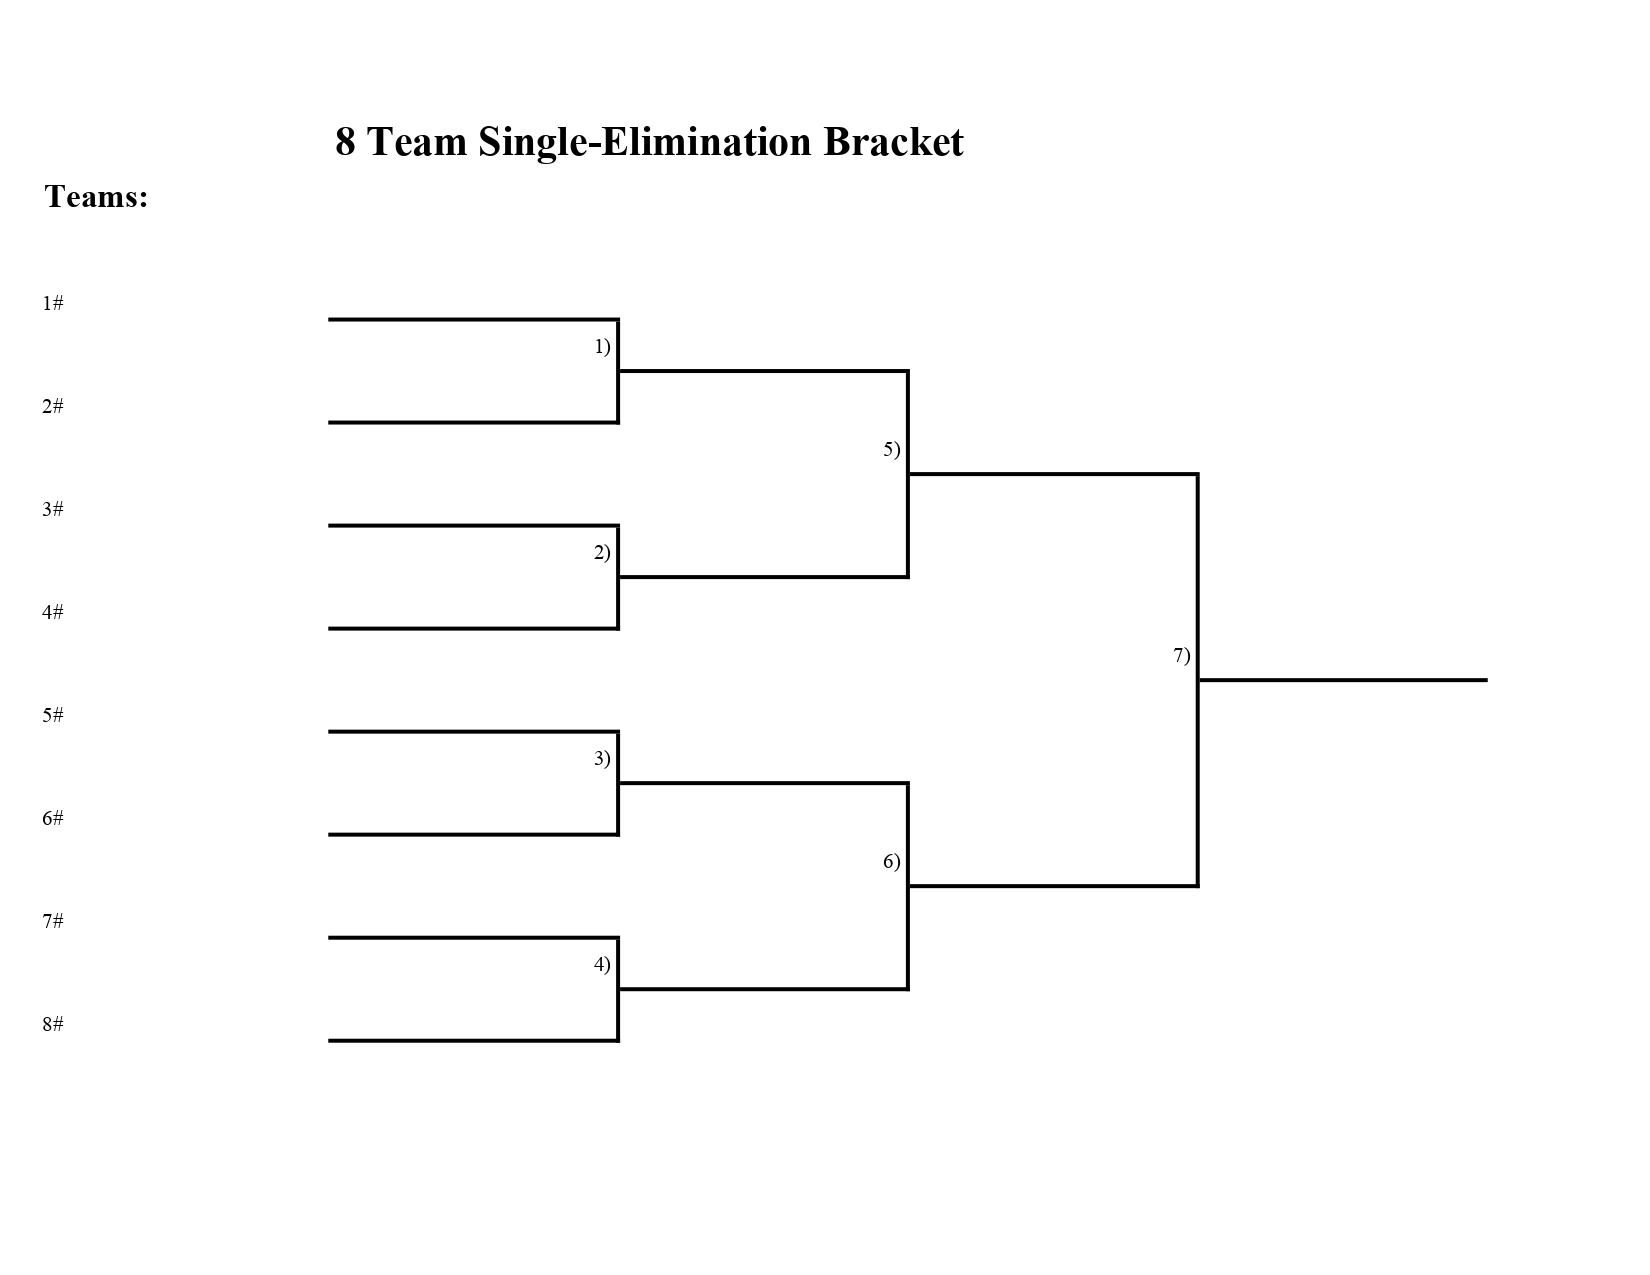 8 team bracket in downloadable and printable PDF